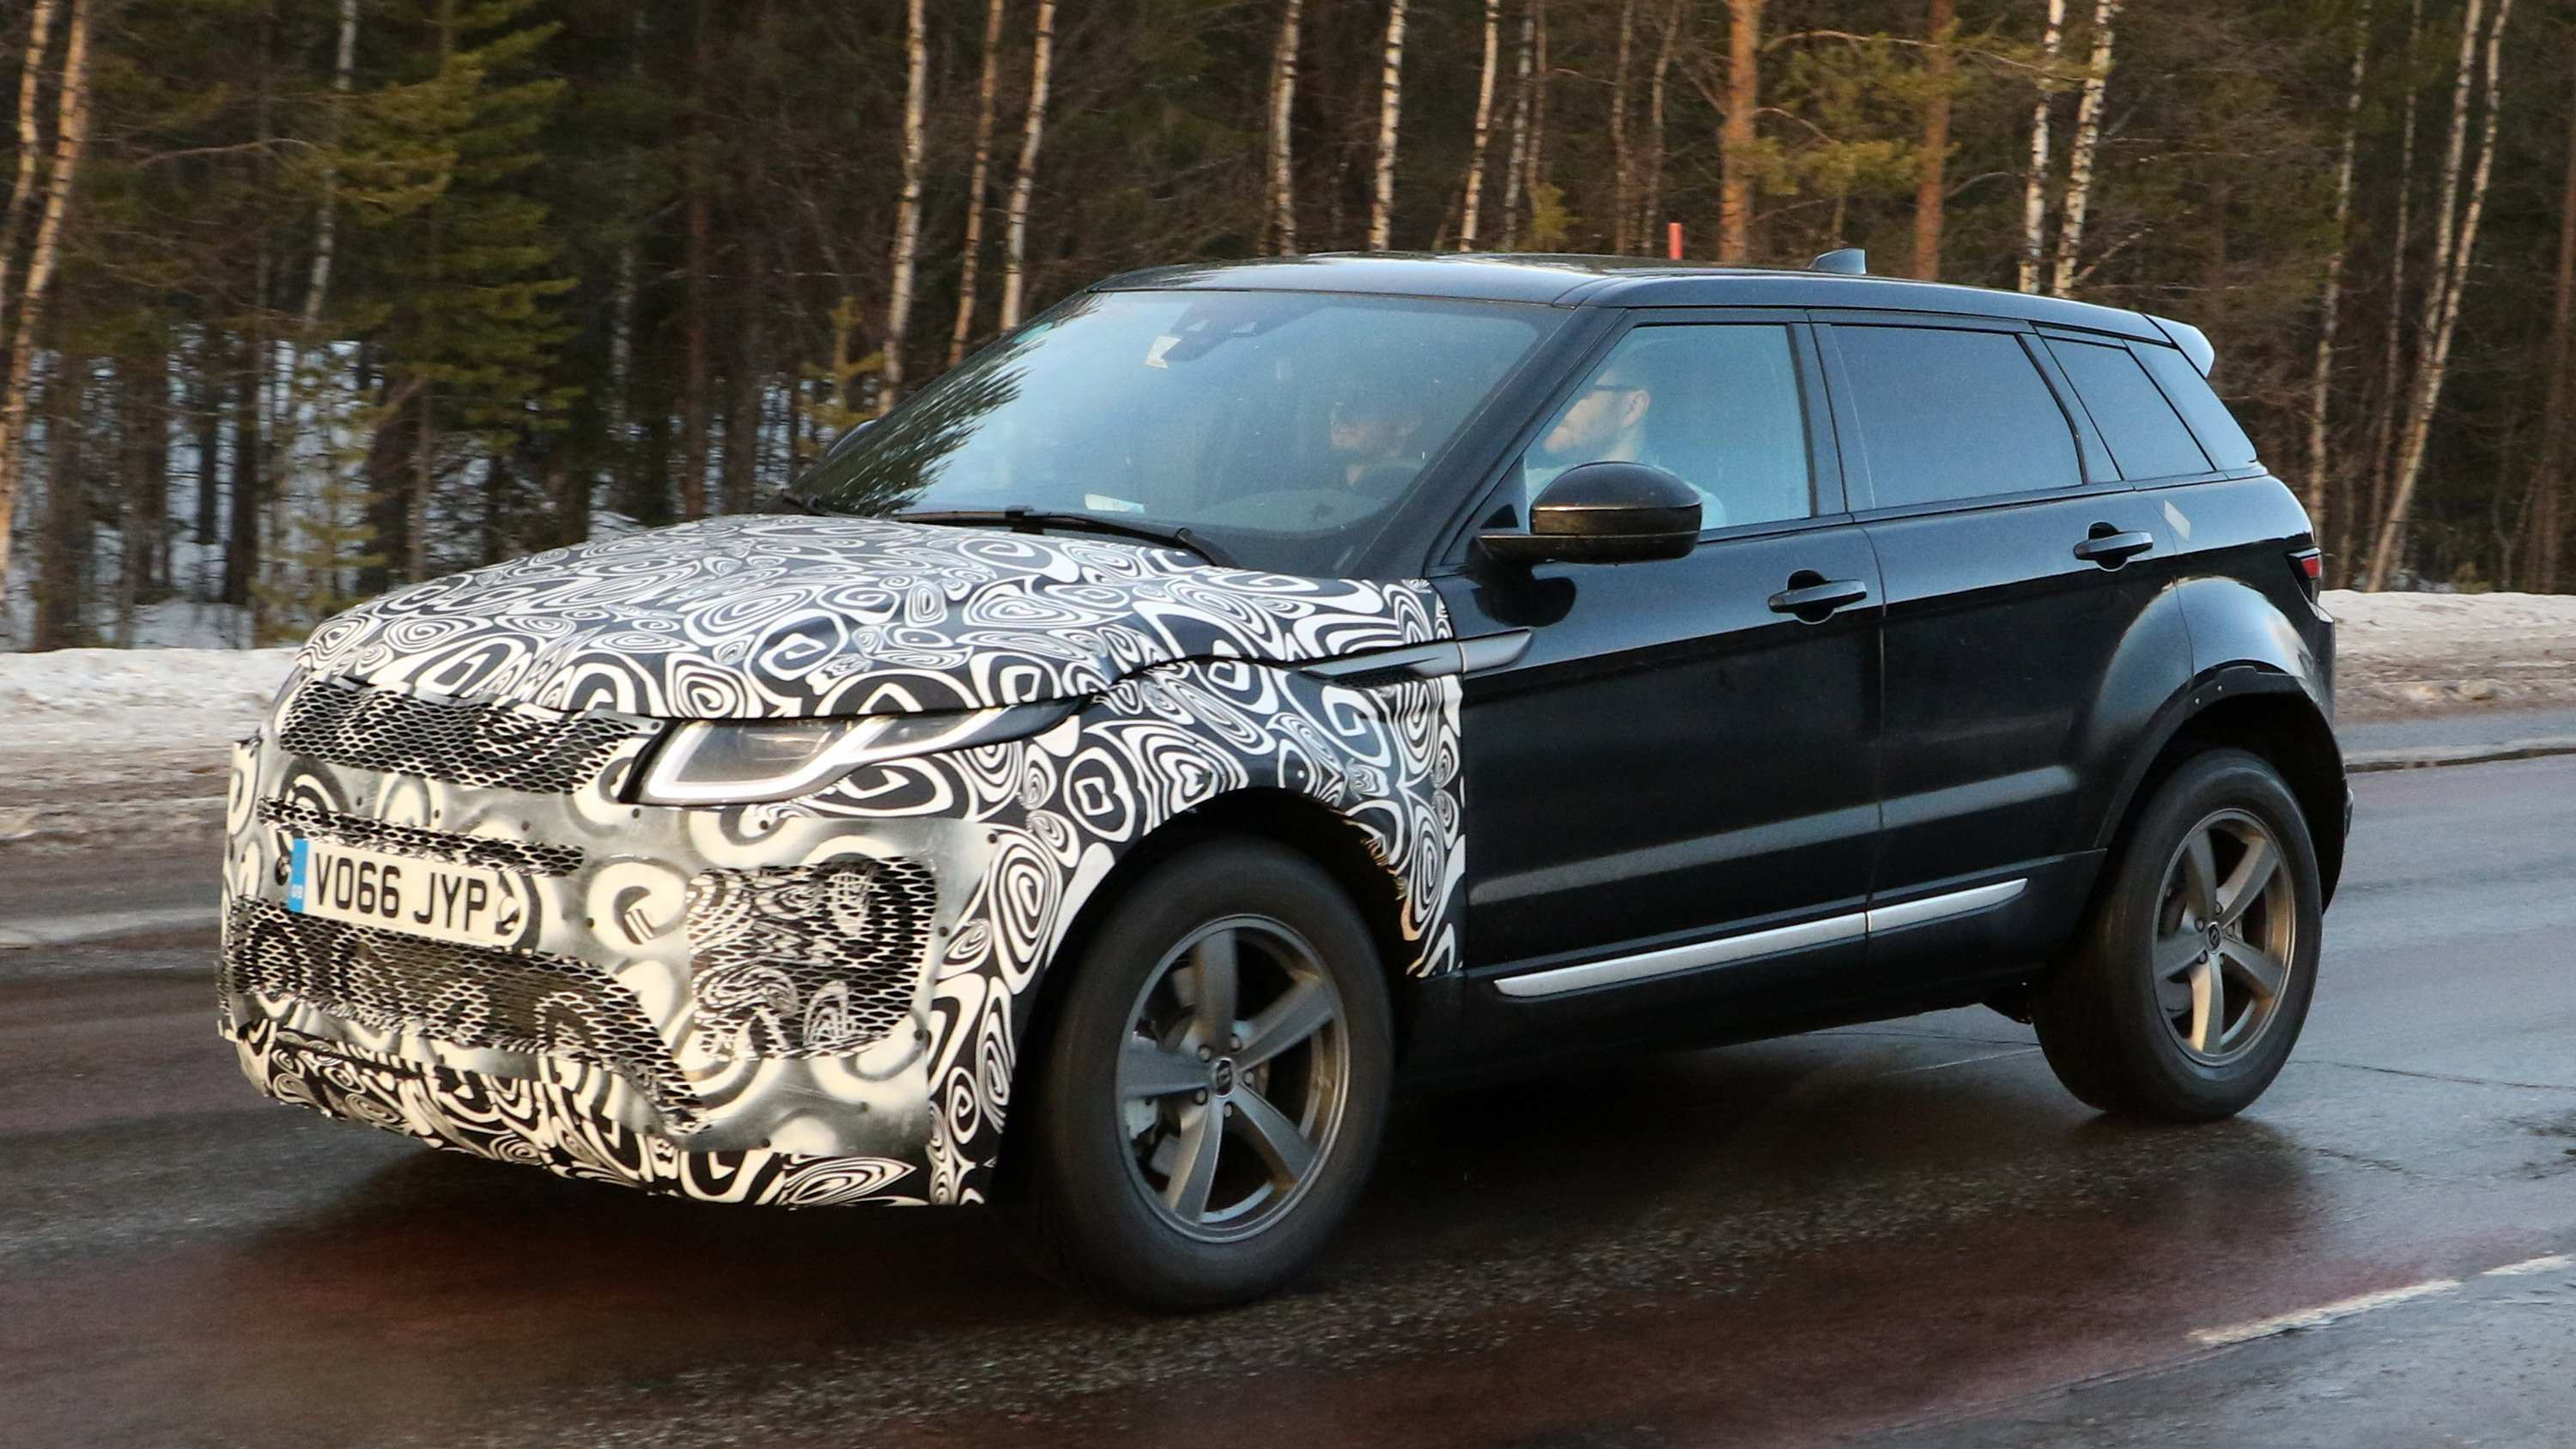 76 Best Review 2020 Land Rover Truck Research New for 2020 Land Rover Truck